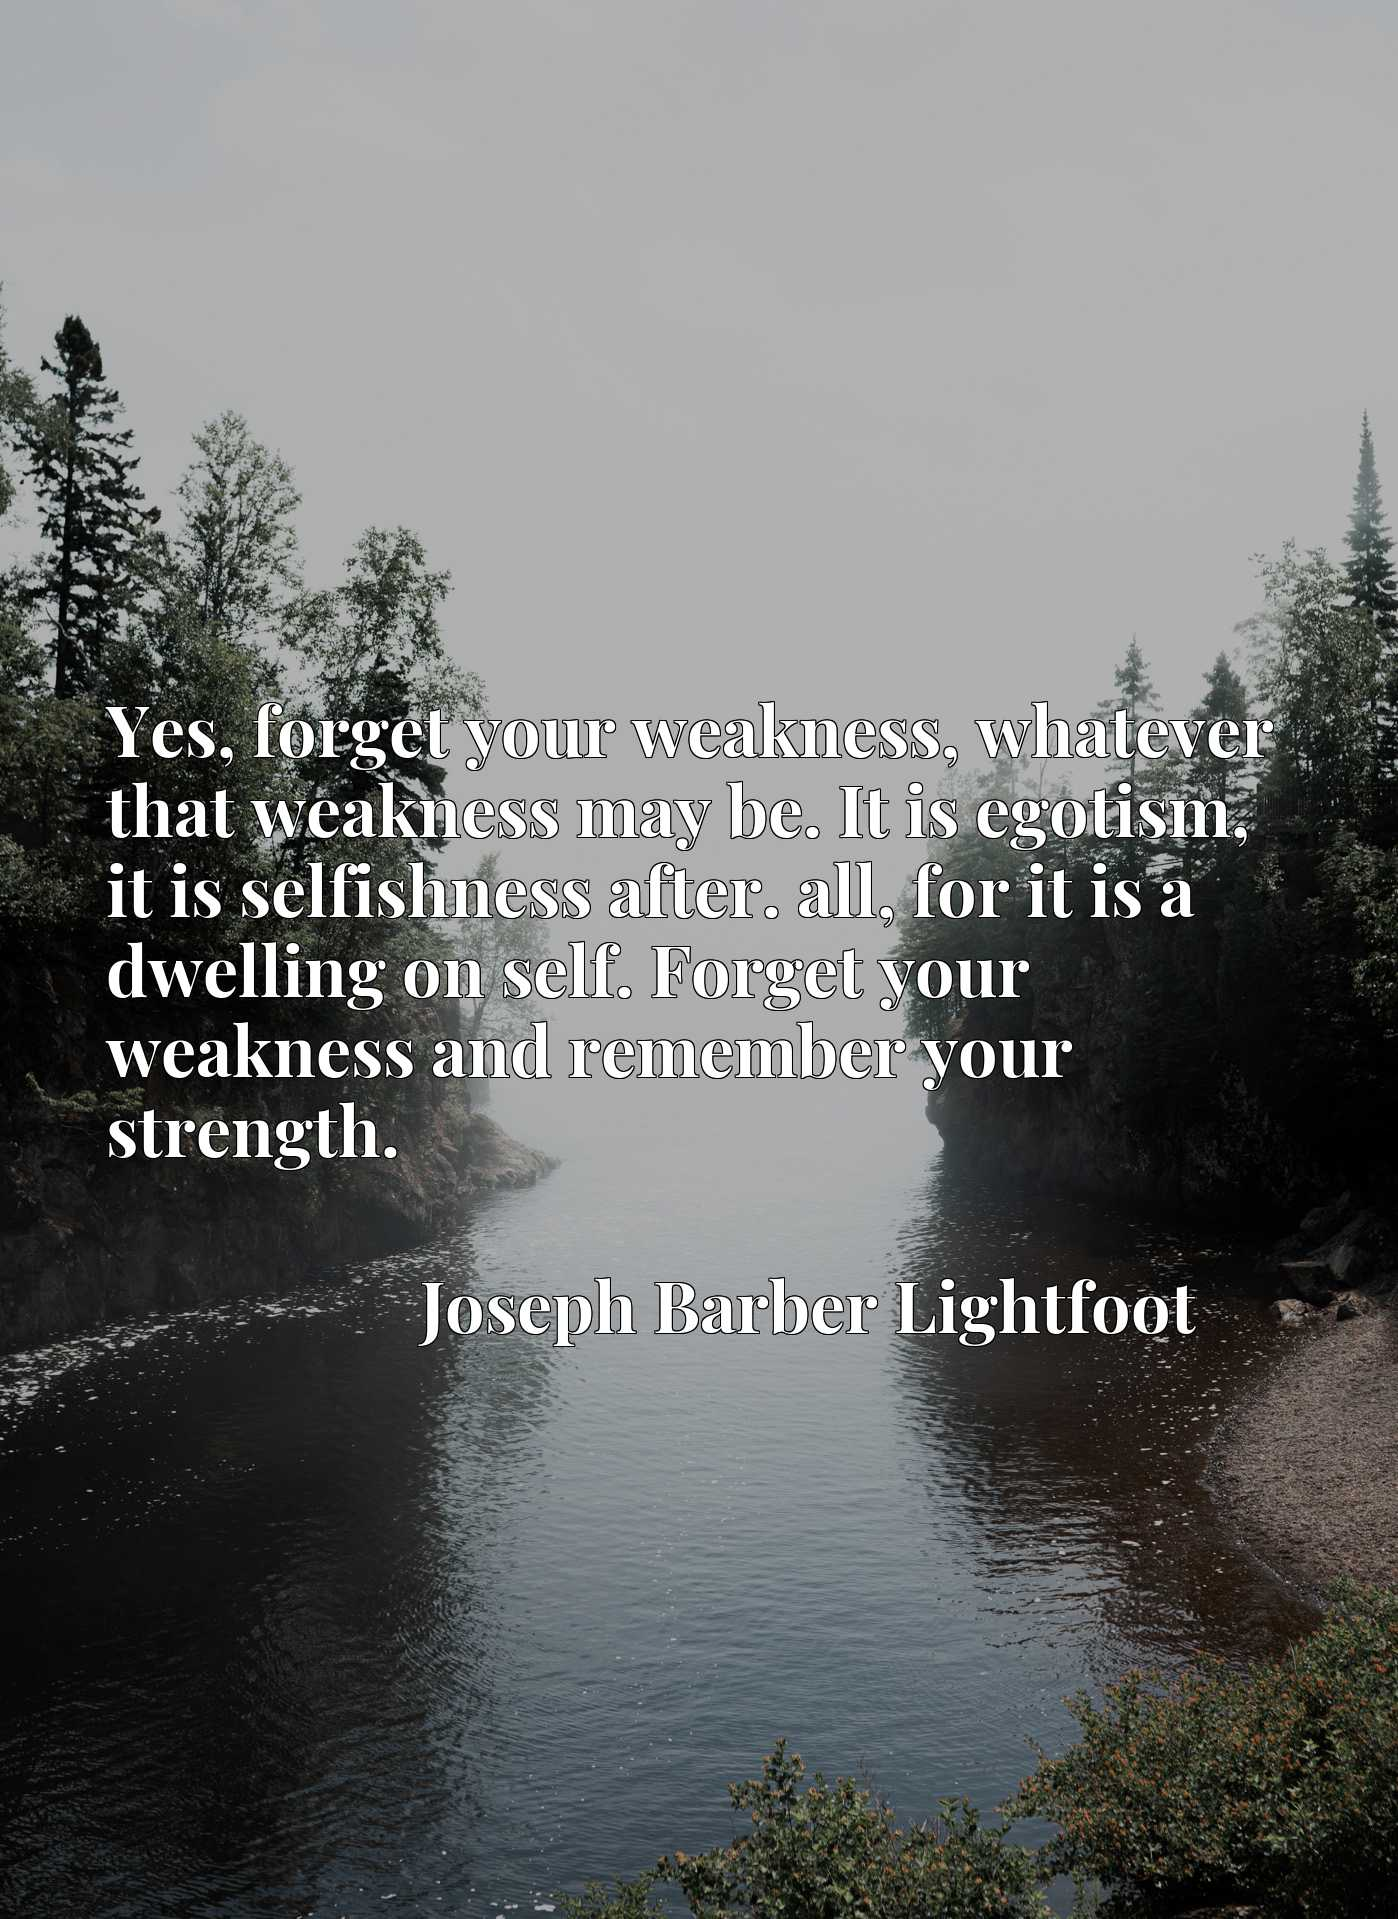 Yes, forget your weakness, whatever that weakness may be. It is egotism, it is selfishness after. all, for it is a dwelling on self. Forget your weakness and remember your strength.